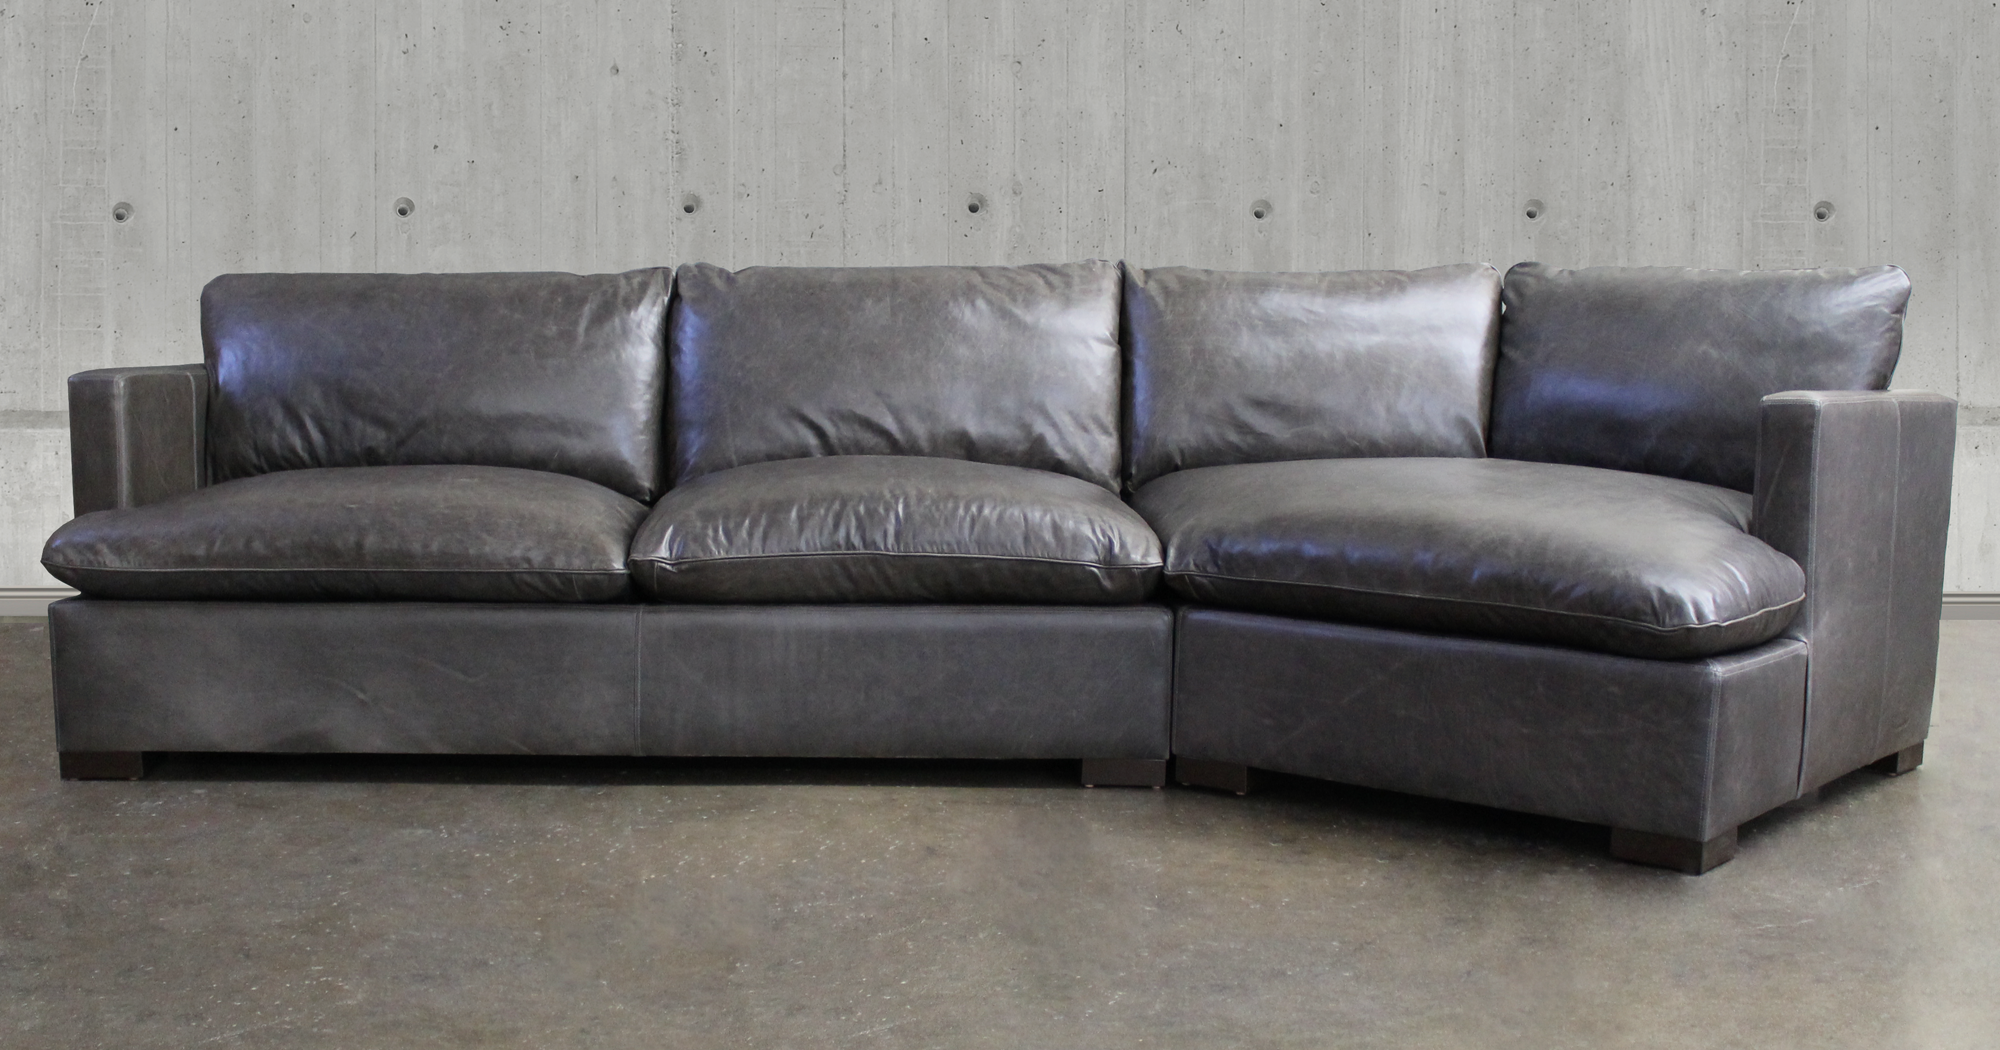 American Made Leather Furniture Leather Sofas Leather Chairs